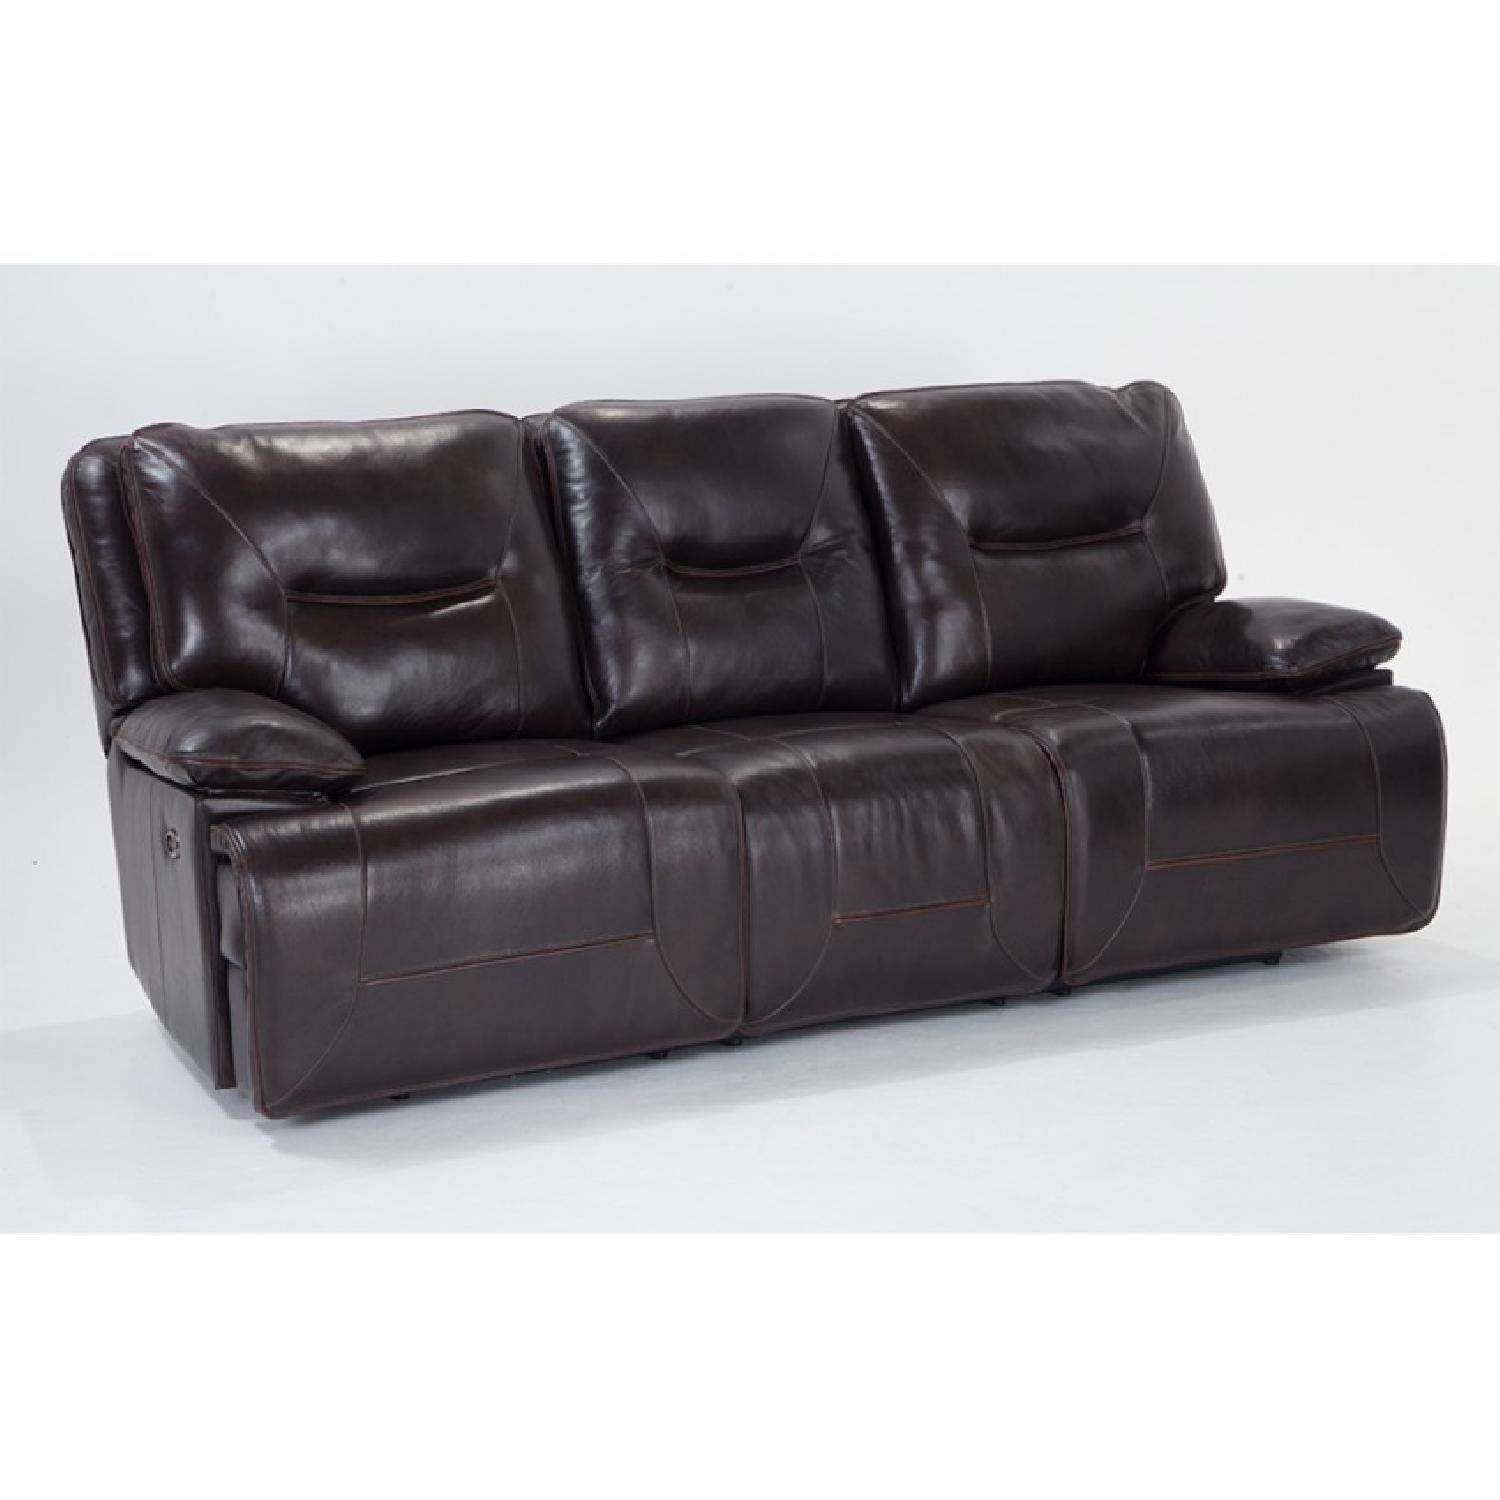 Bobu0027s Brown Leather Recliner Sofa w/ USB Ports u0026 Console ...  sc 1 st  AptDeco : recliner sofa with console - islam-shia.org